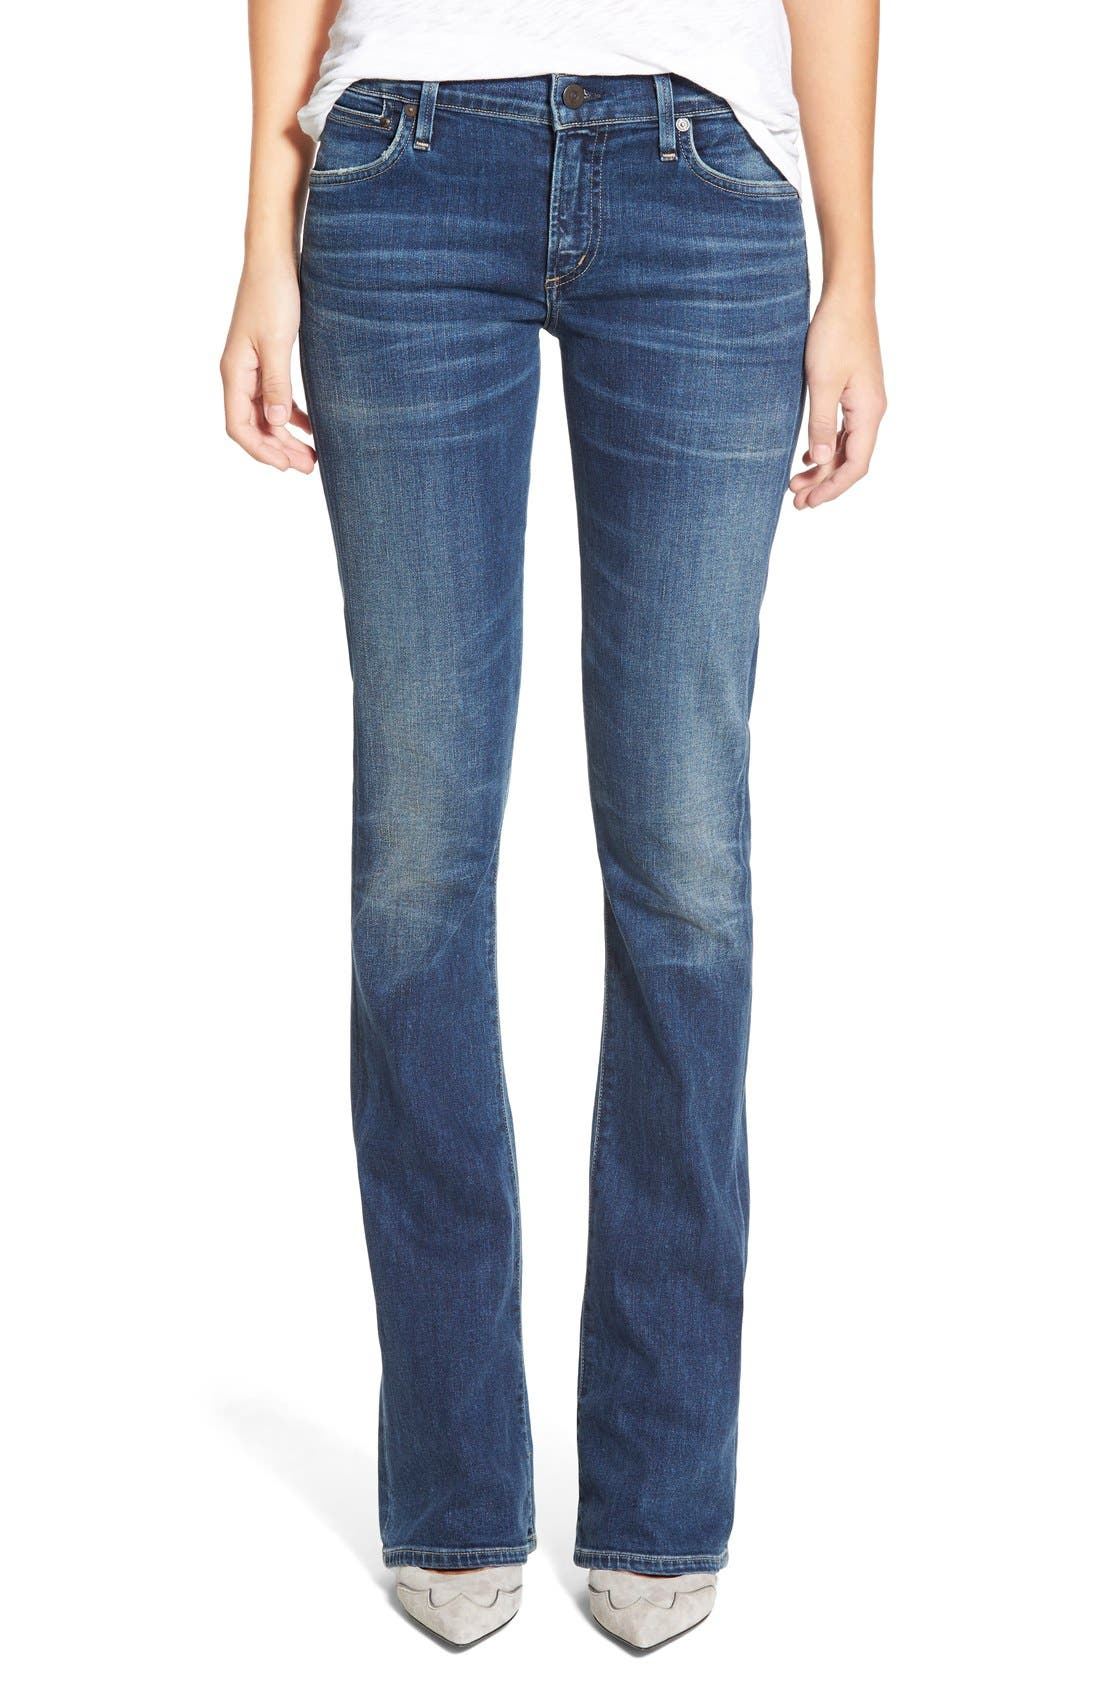 Alternate Image 1 Selected - Citizens of Humanity 'Emannuelle' Slim Bootcut Jeans (Modern Love)